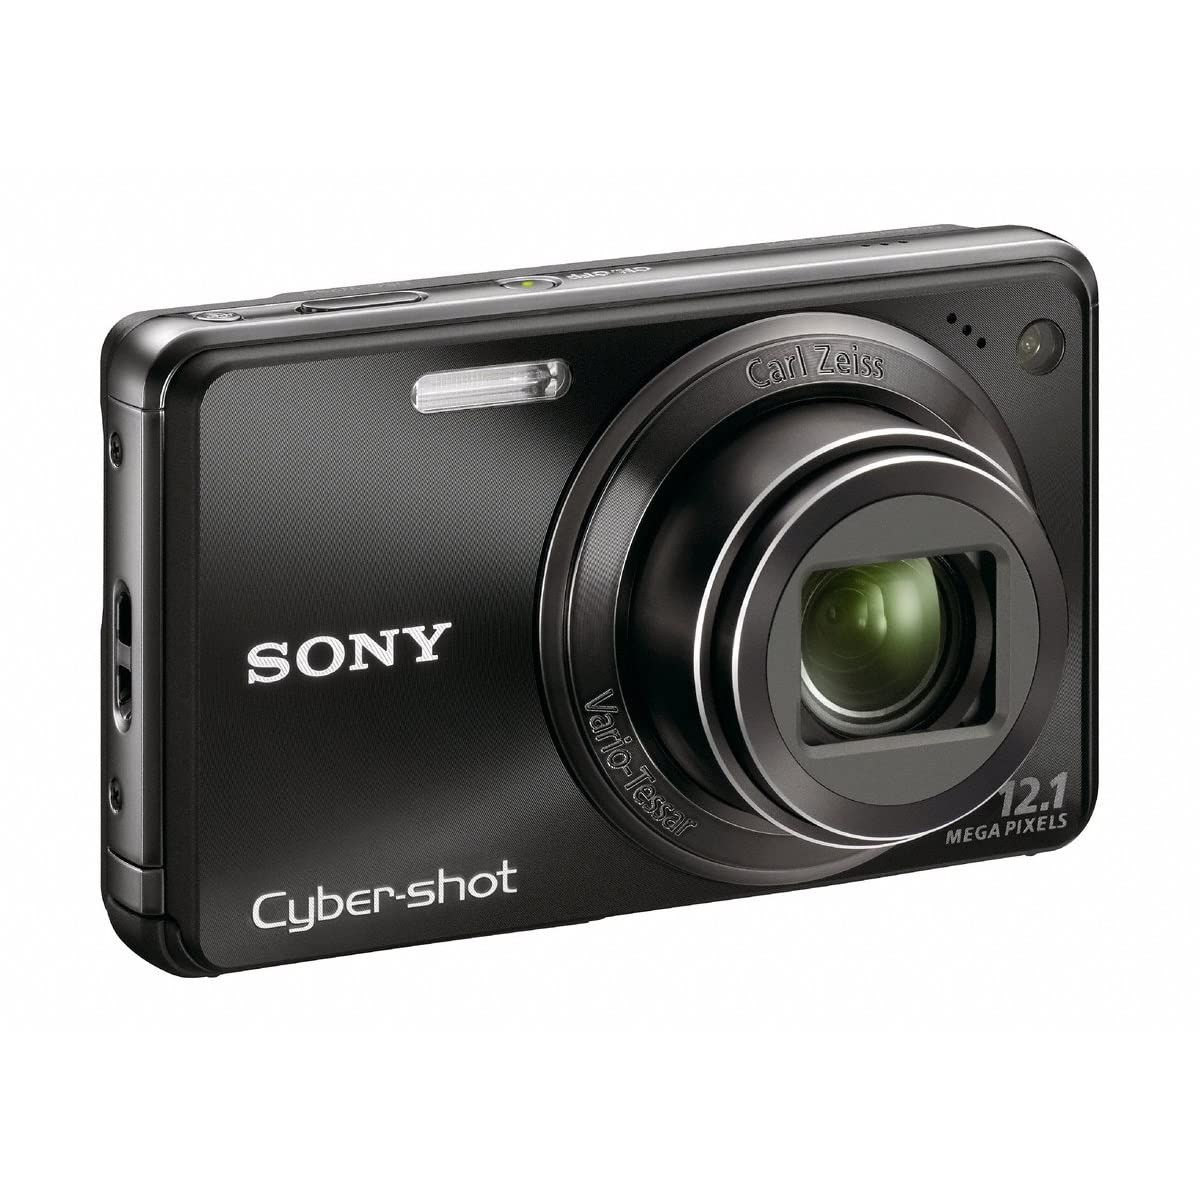 Sony Cyber Shot Dsc W290 12 Mp Digital Camera With 5x /page/229